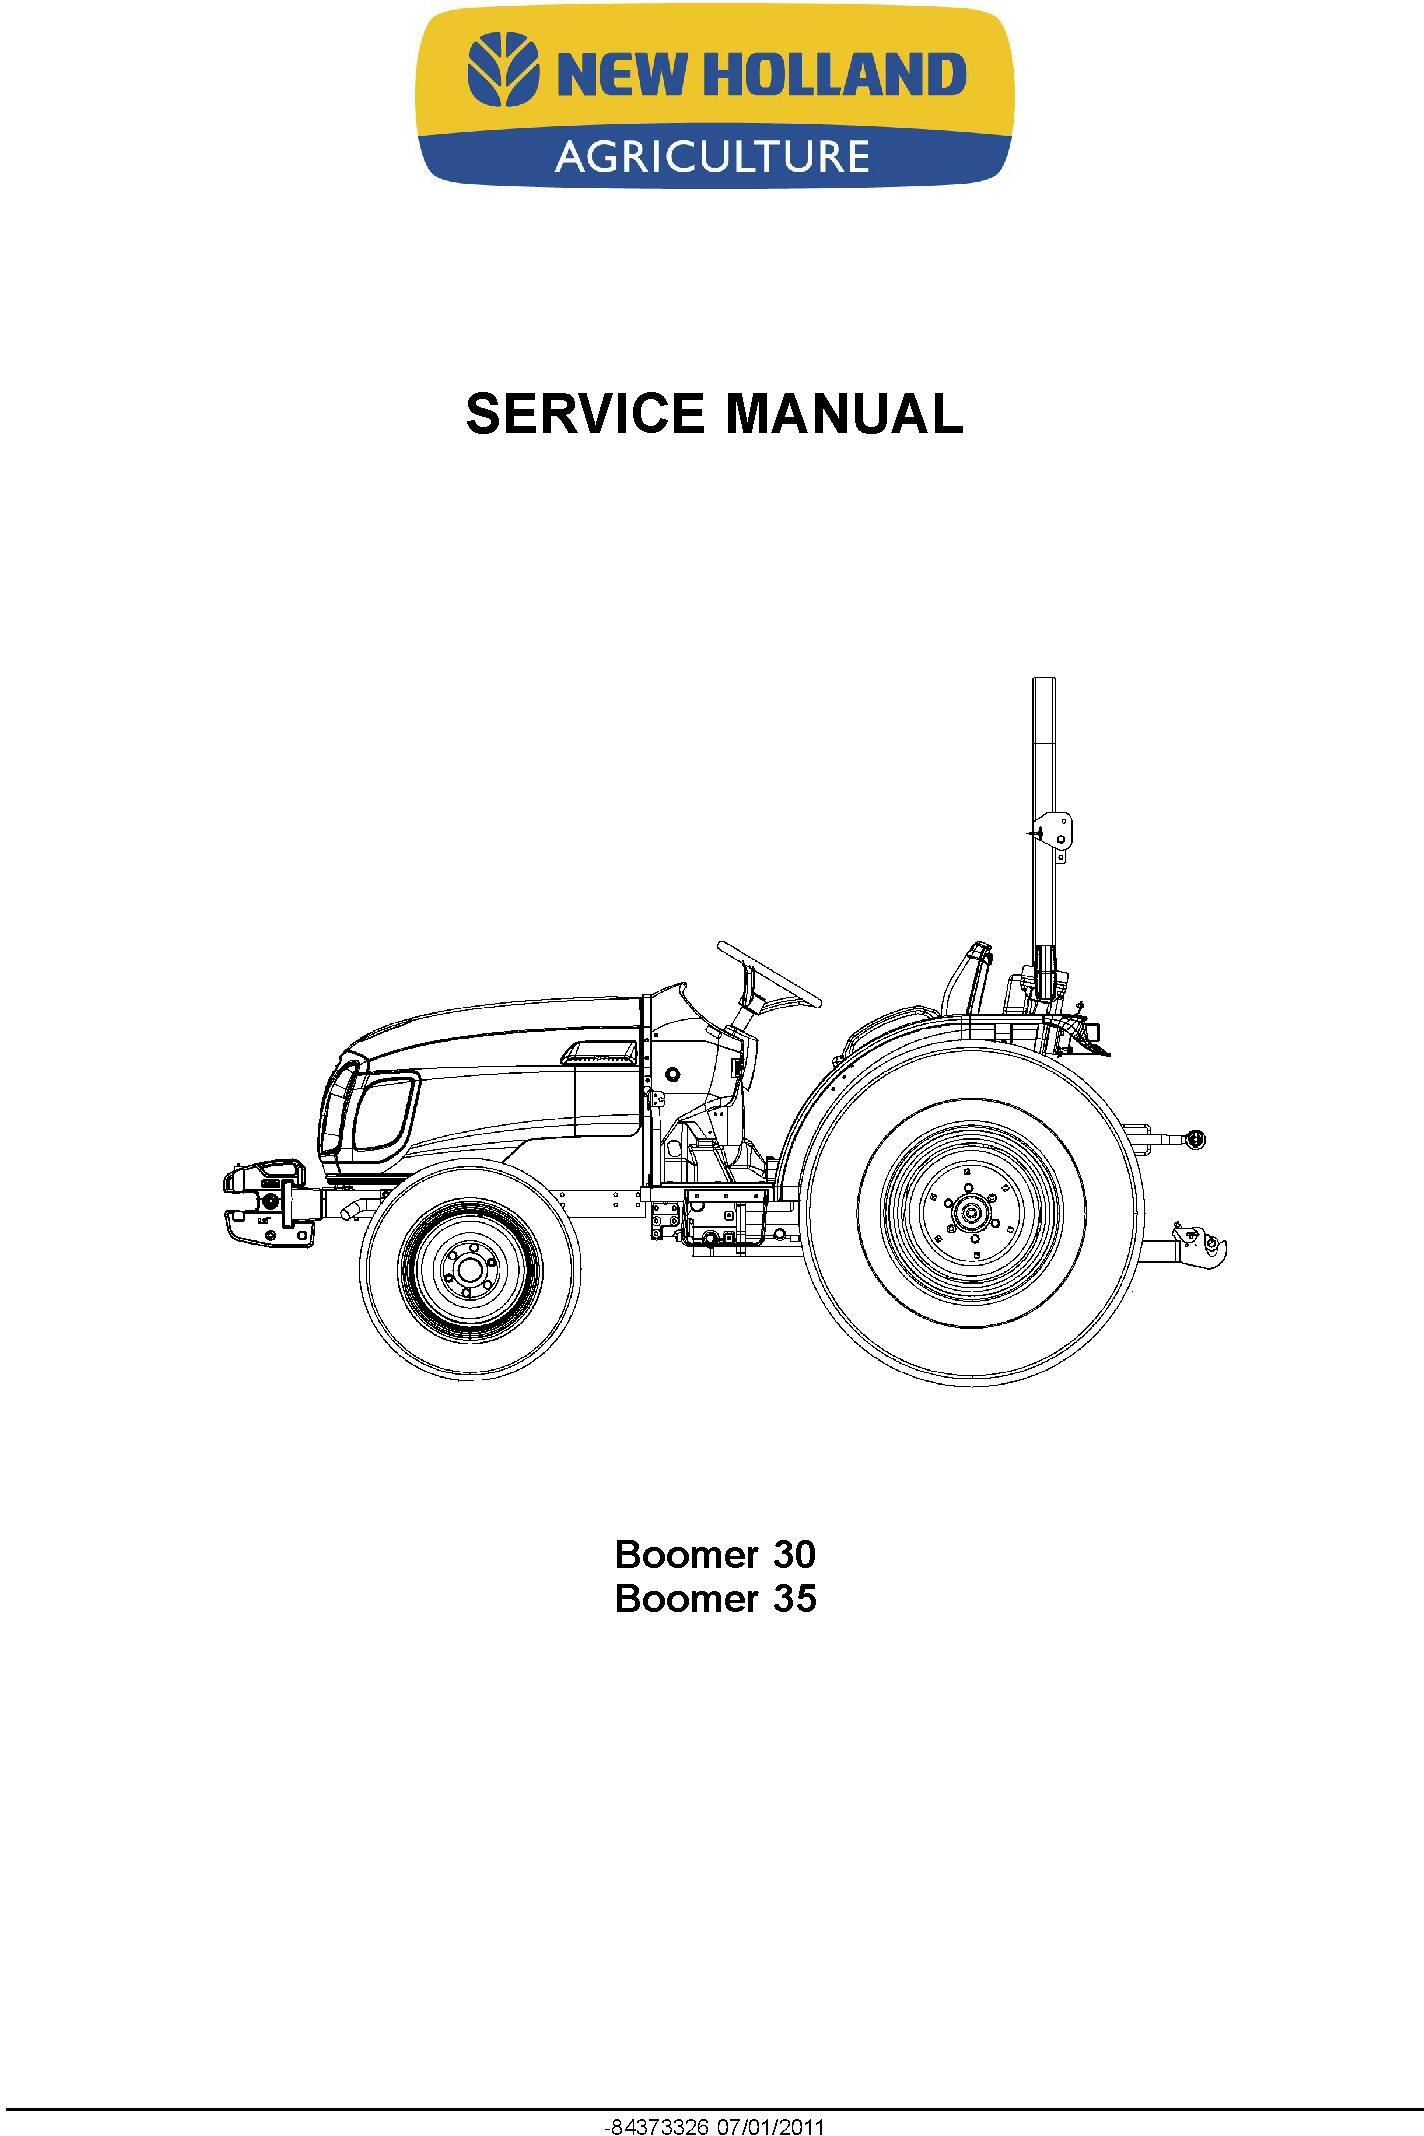 New Holland Boomer 30, Boomer 35 Compact Tractor Service Manual - 1